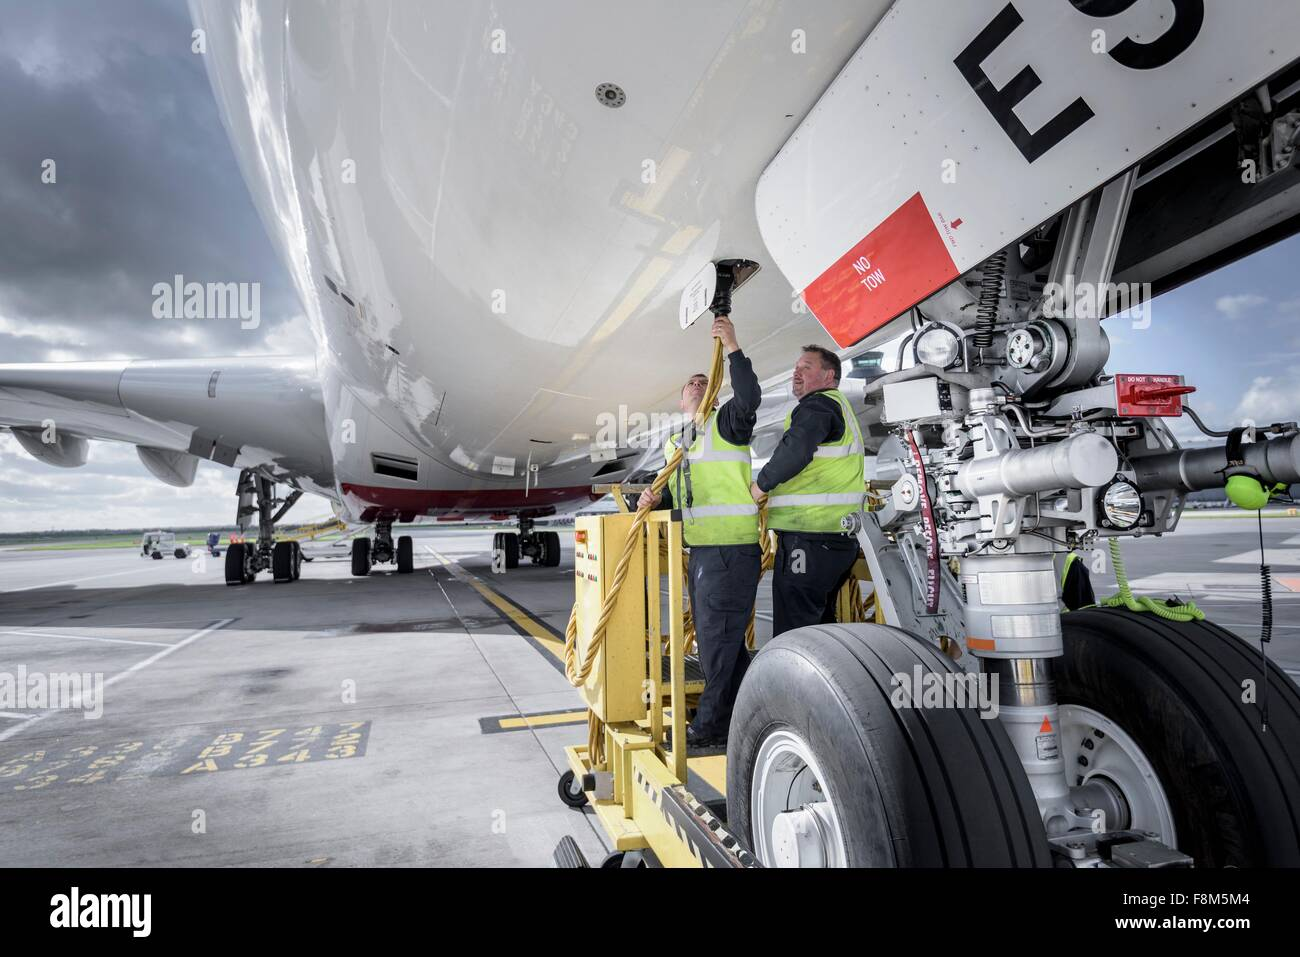 Ground crew operating loading equipment on A380 aircraft - Stock Image